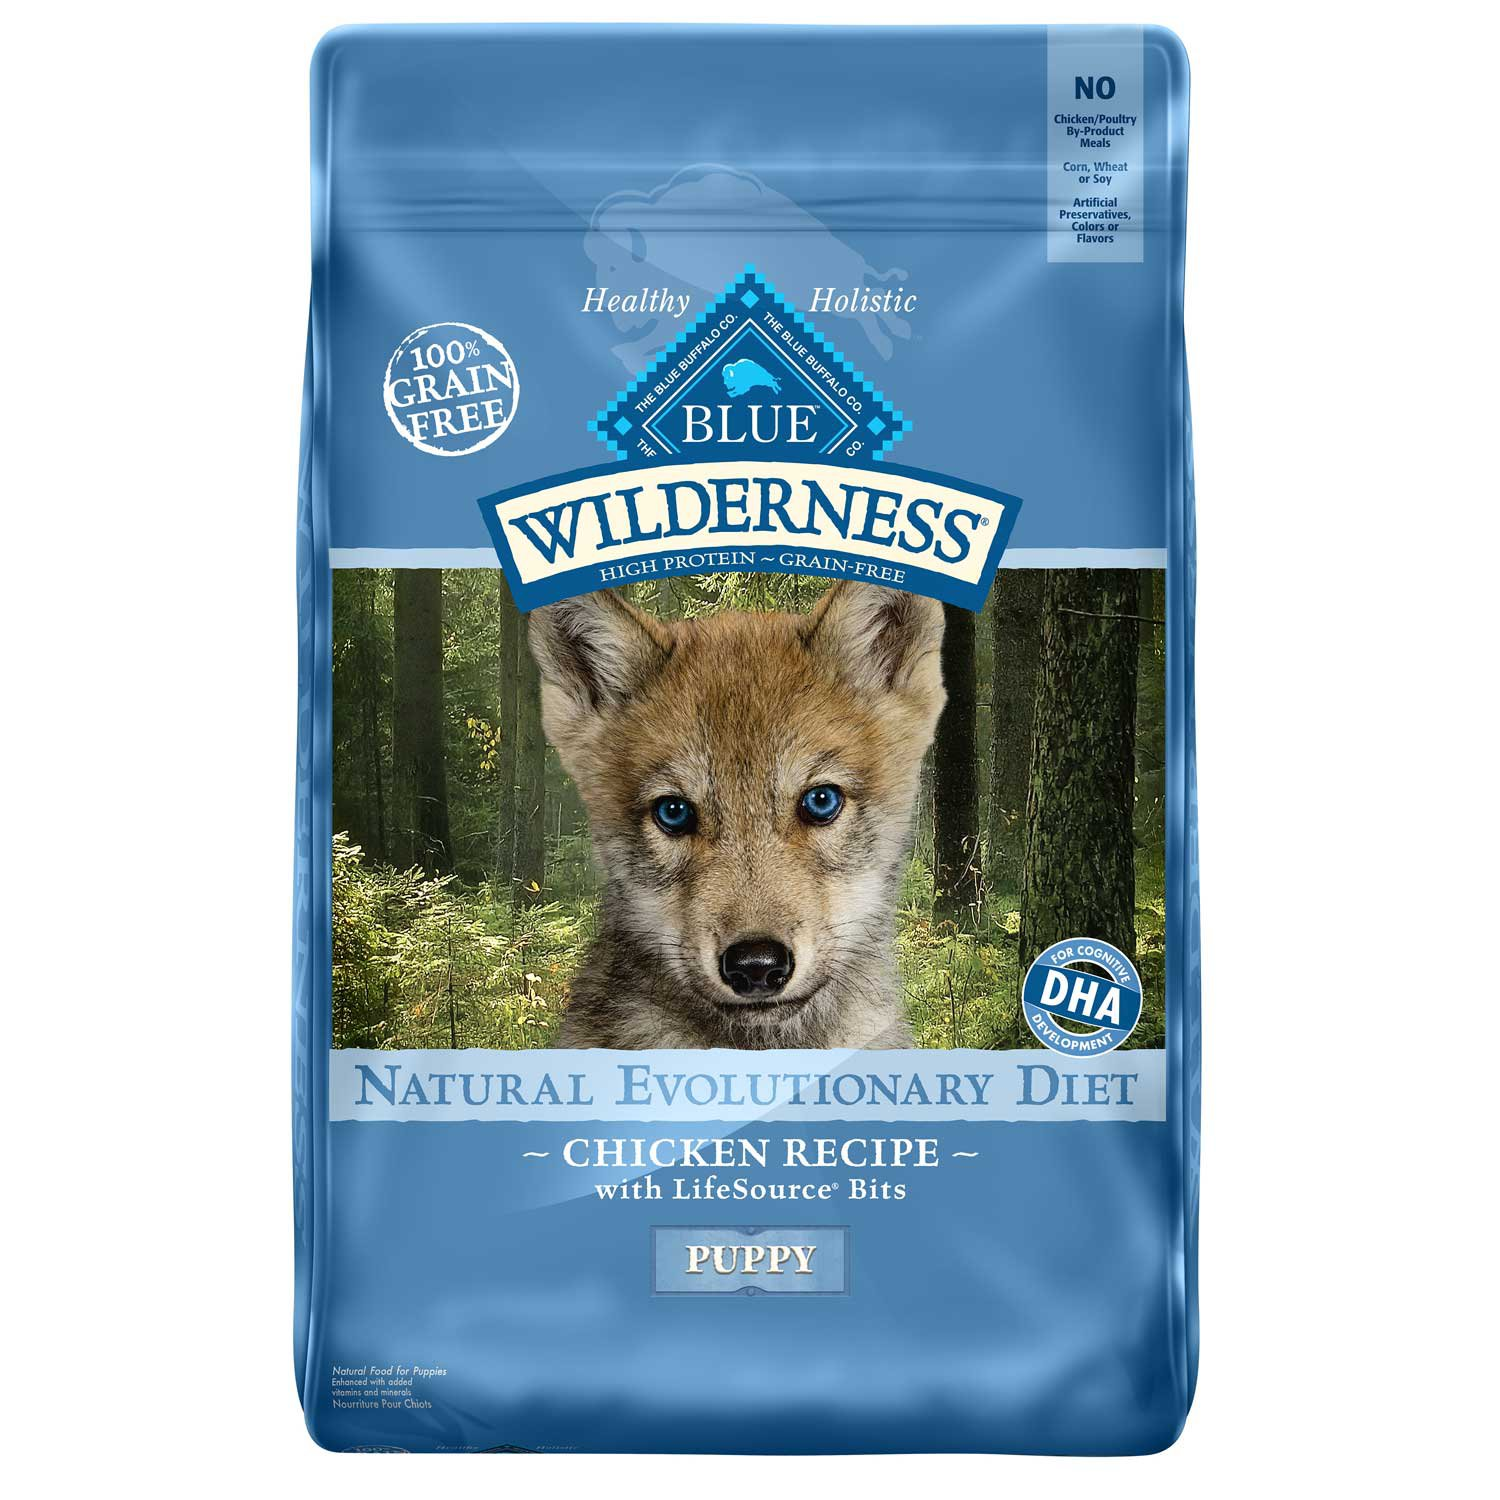 Blue Buffalo High Protein Puppy Food